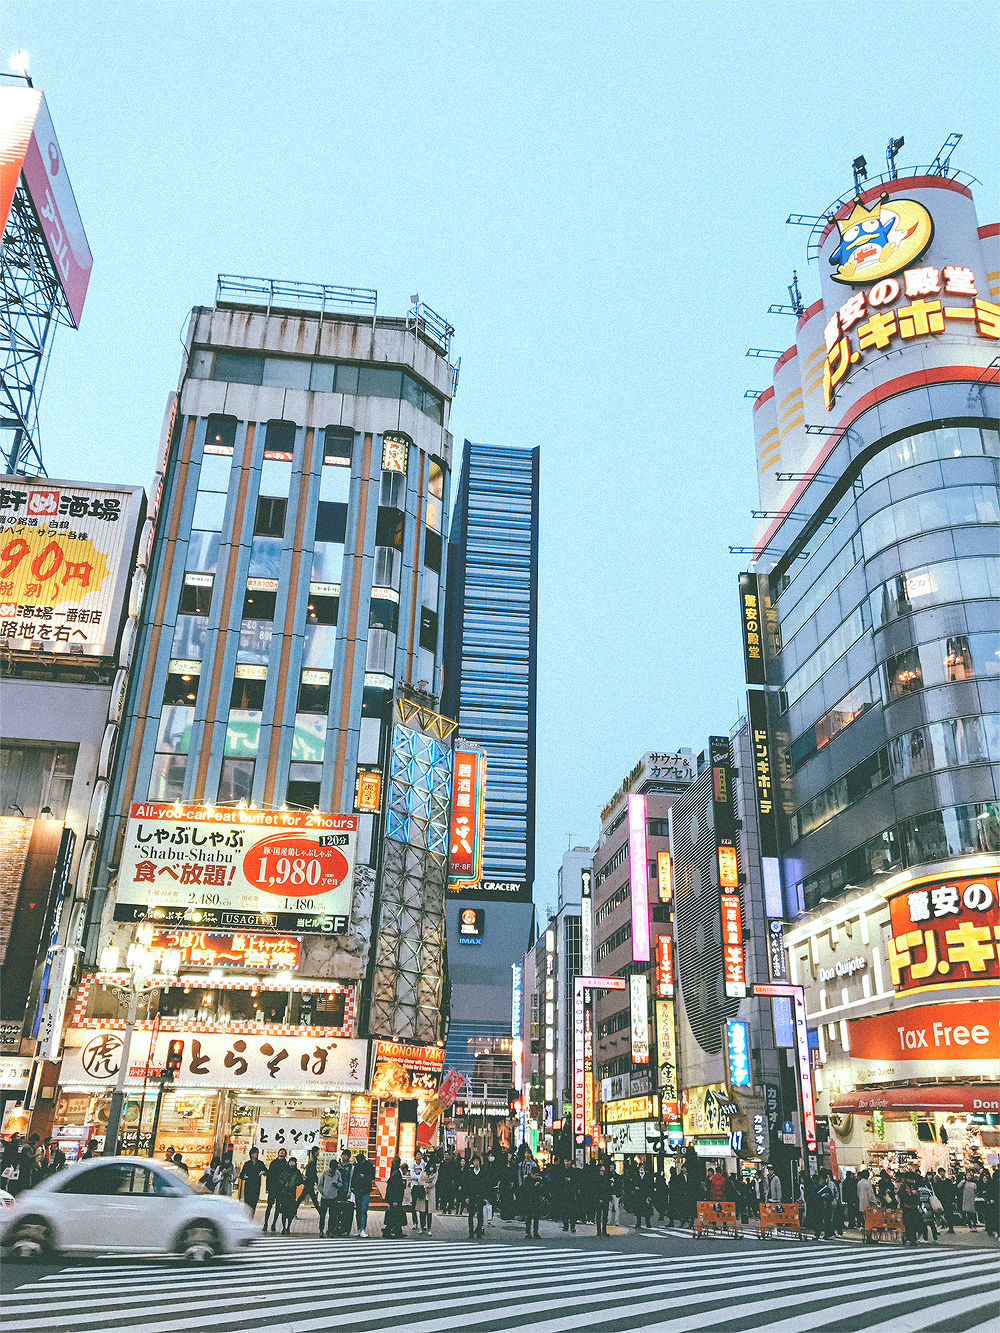 The busy streets of Shinjuku actually reminded me of a safer, cleaner, LA. After a brief visit to the TOHO Theater for exclusive Moana merchandise, we headed back to Maihama station. We had plans to meet up with a friend later for a yummy sushi dinner.